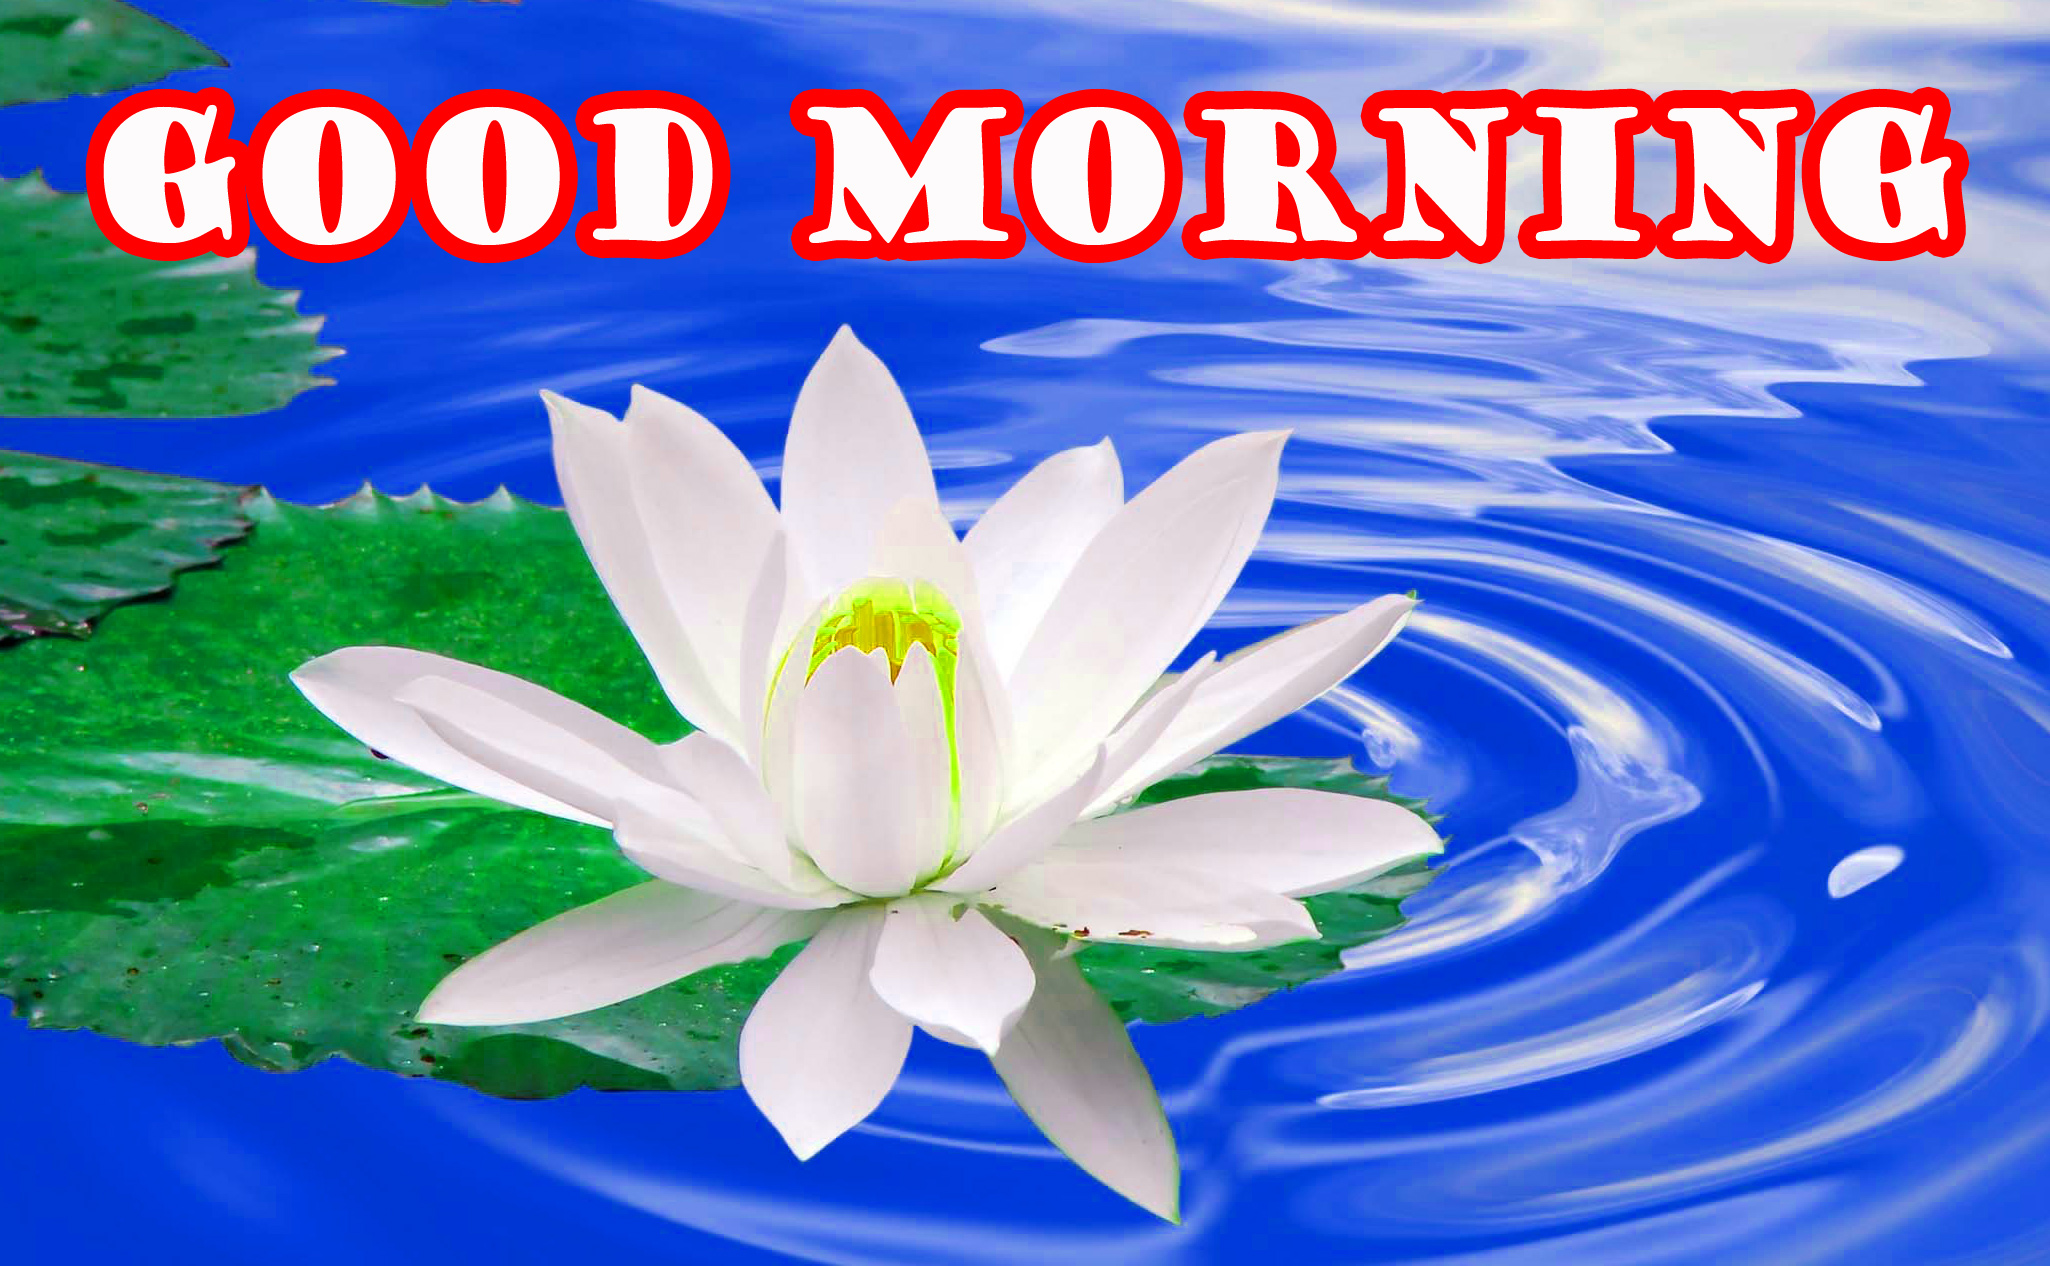 Good Morning Flowers Photo Wallpaper Pictures HD Download